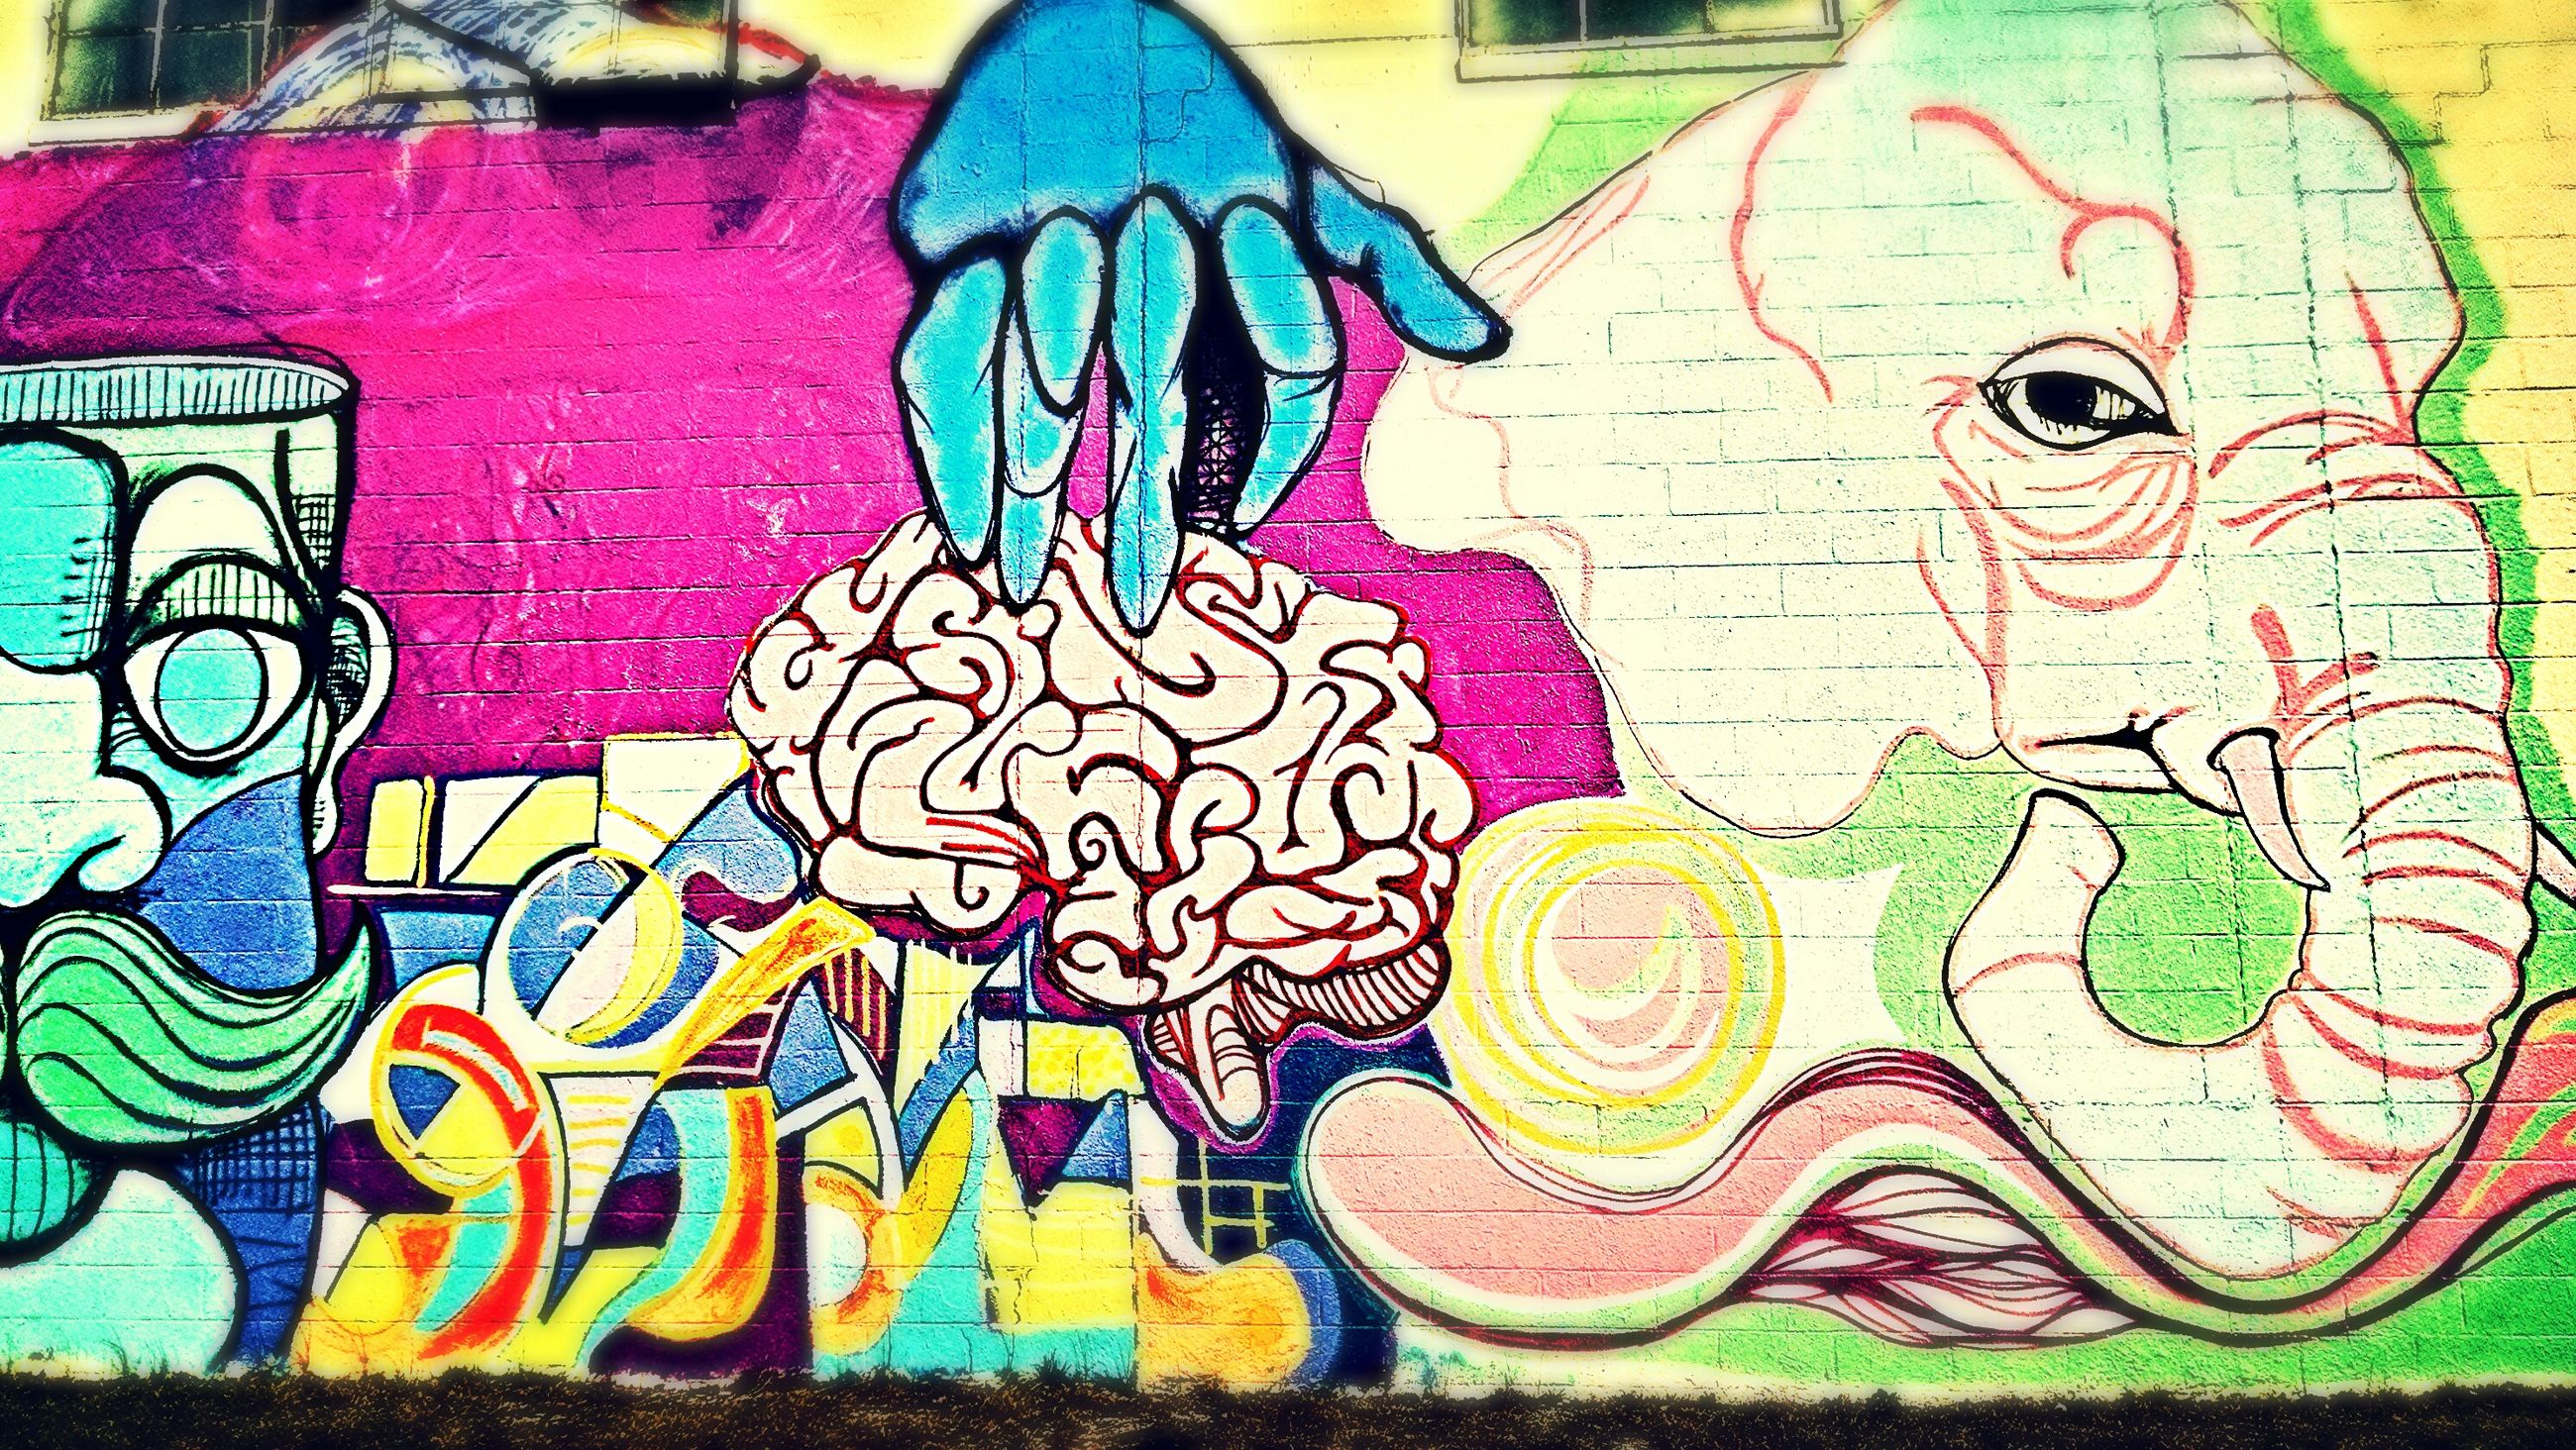 art, graffiti, creativity, art and craft, multi colored, wall - building feature, pattern, design, built structure, street art, architecture, wall, mural, painting, colorful, full frame, floral pattern, indoors, backgrounds, building exterior